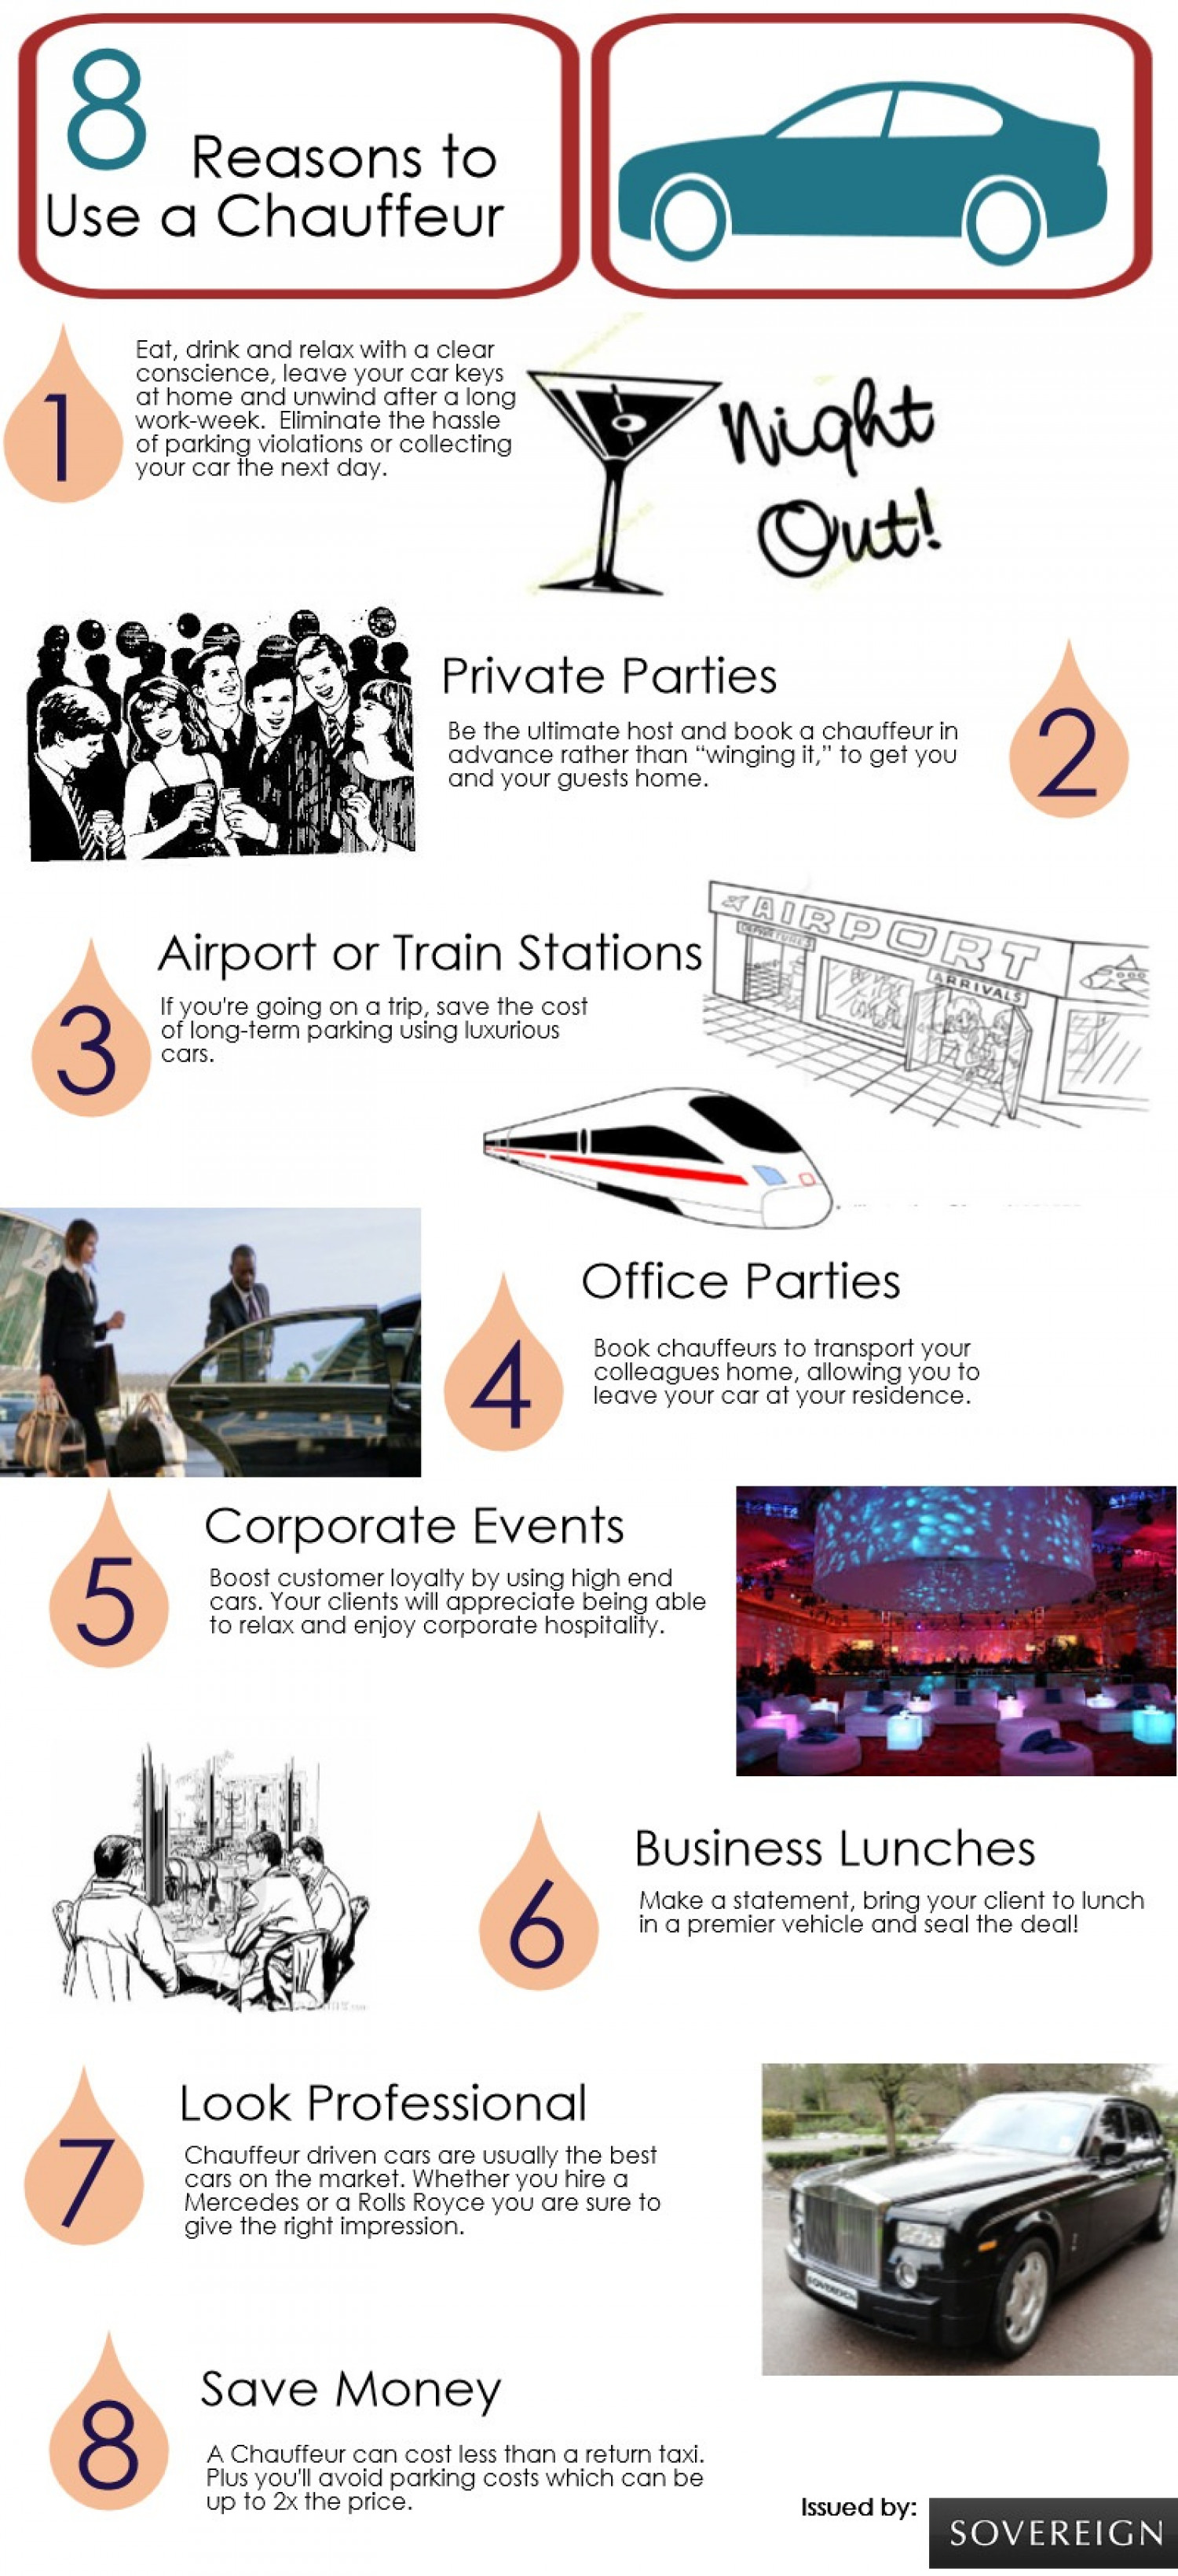 8 Reasons to Use a Chauffeur Infographic